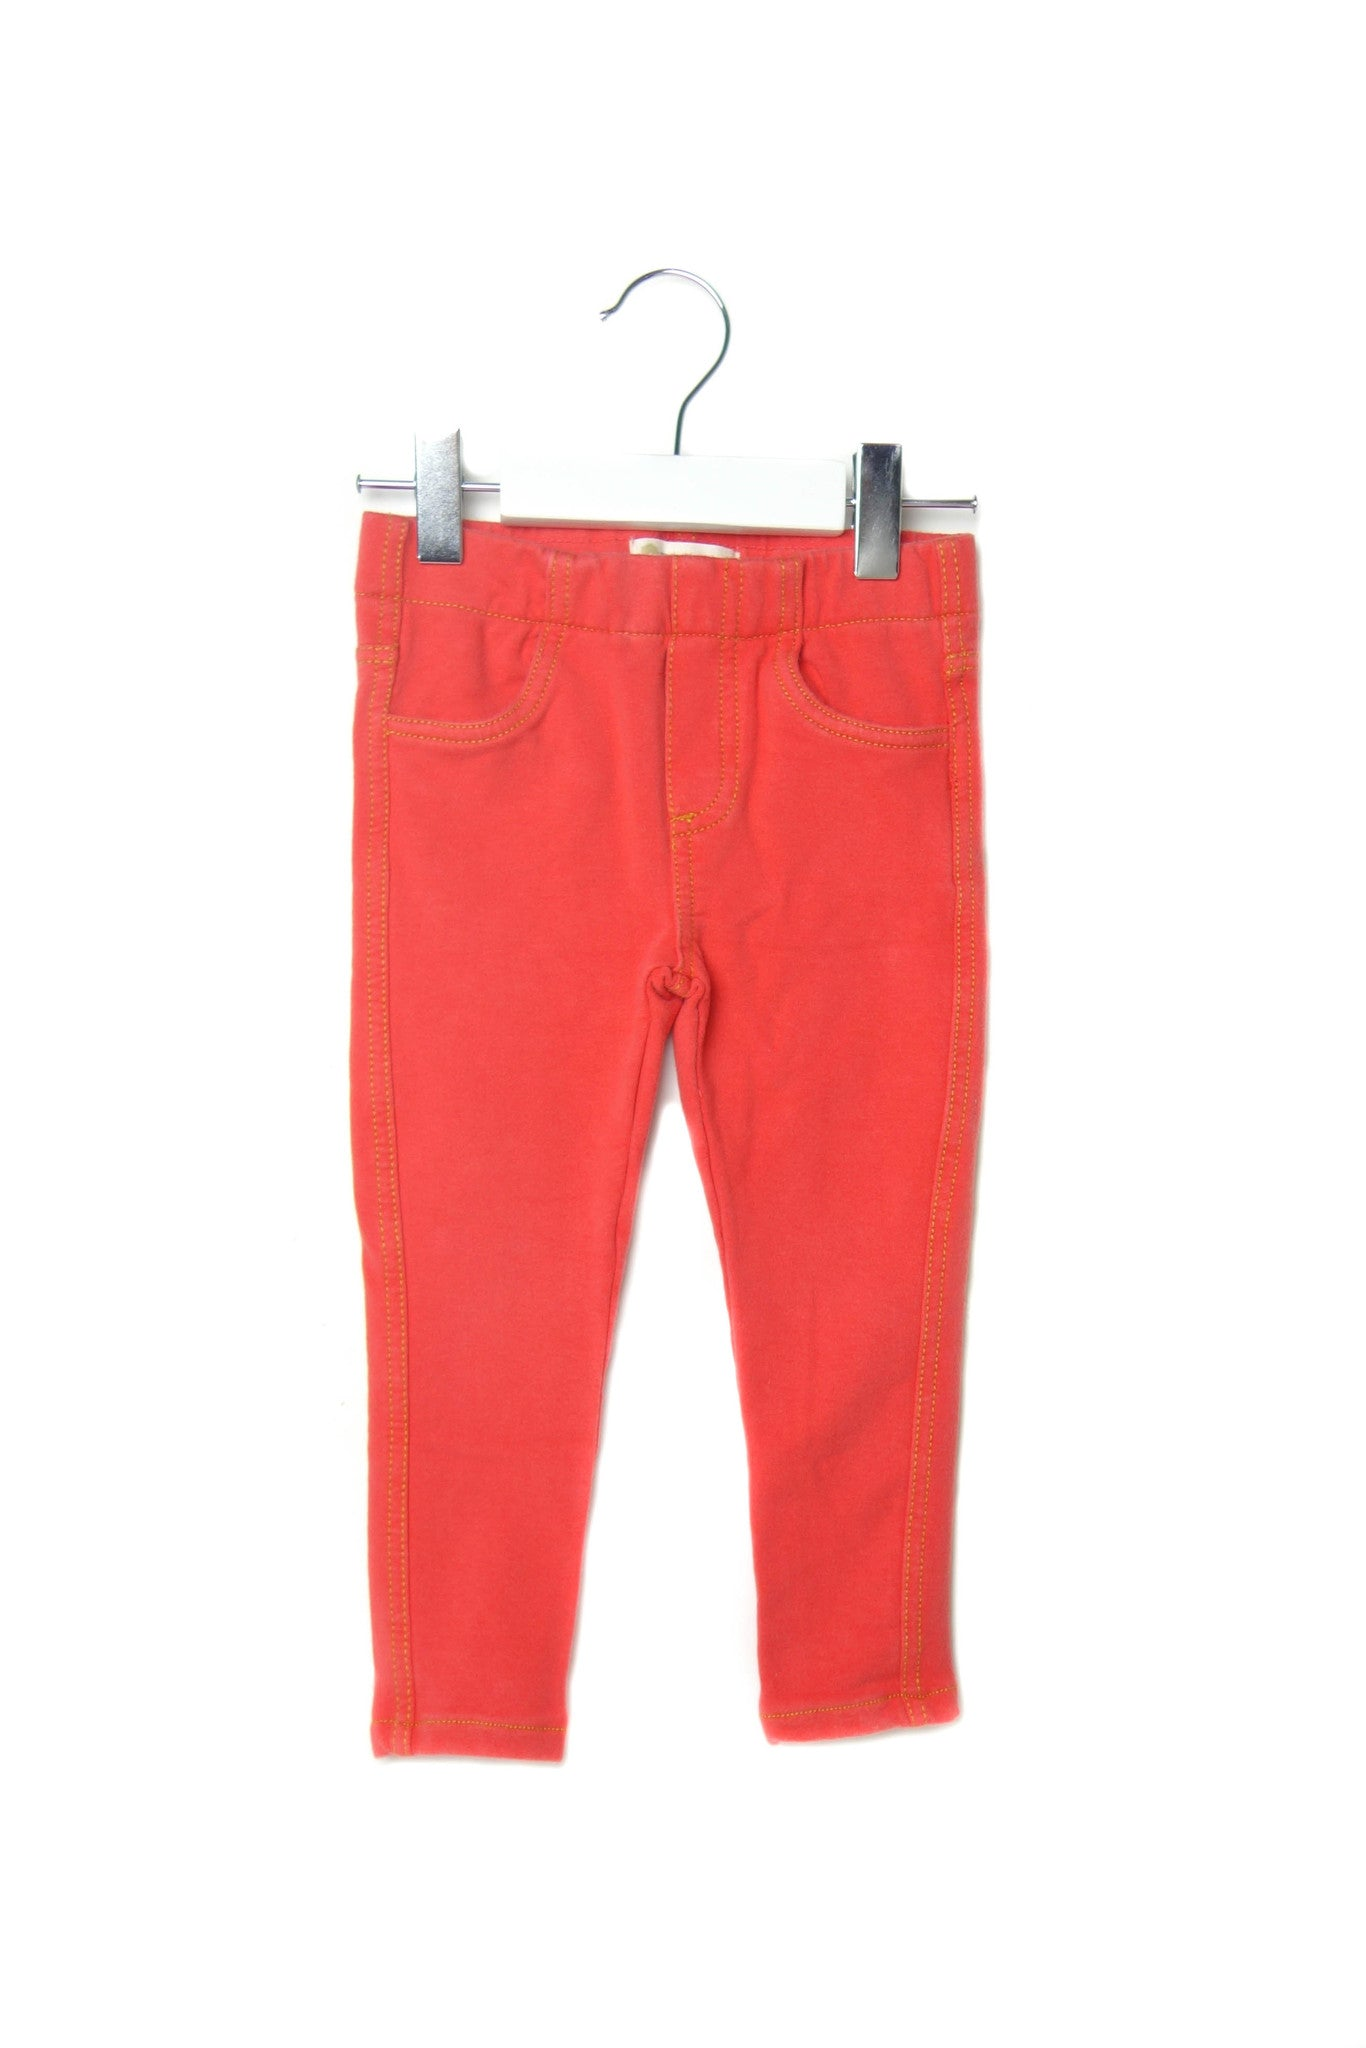 10001425 Tucker & Tate Kids~Pants 2T at Retykle